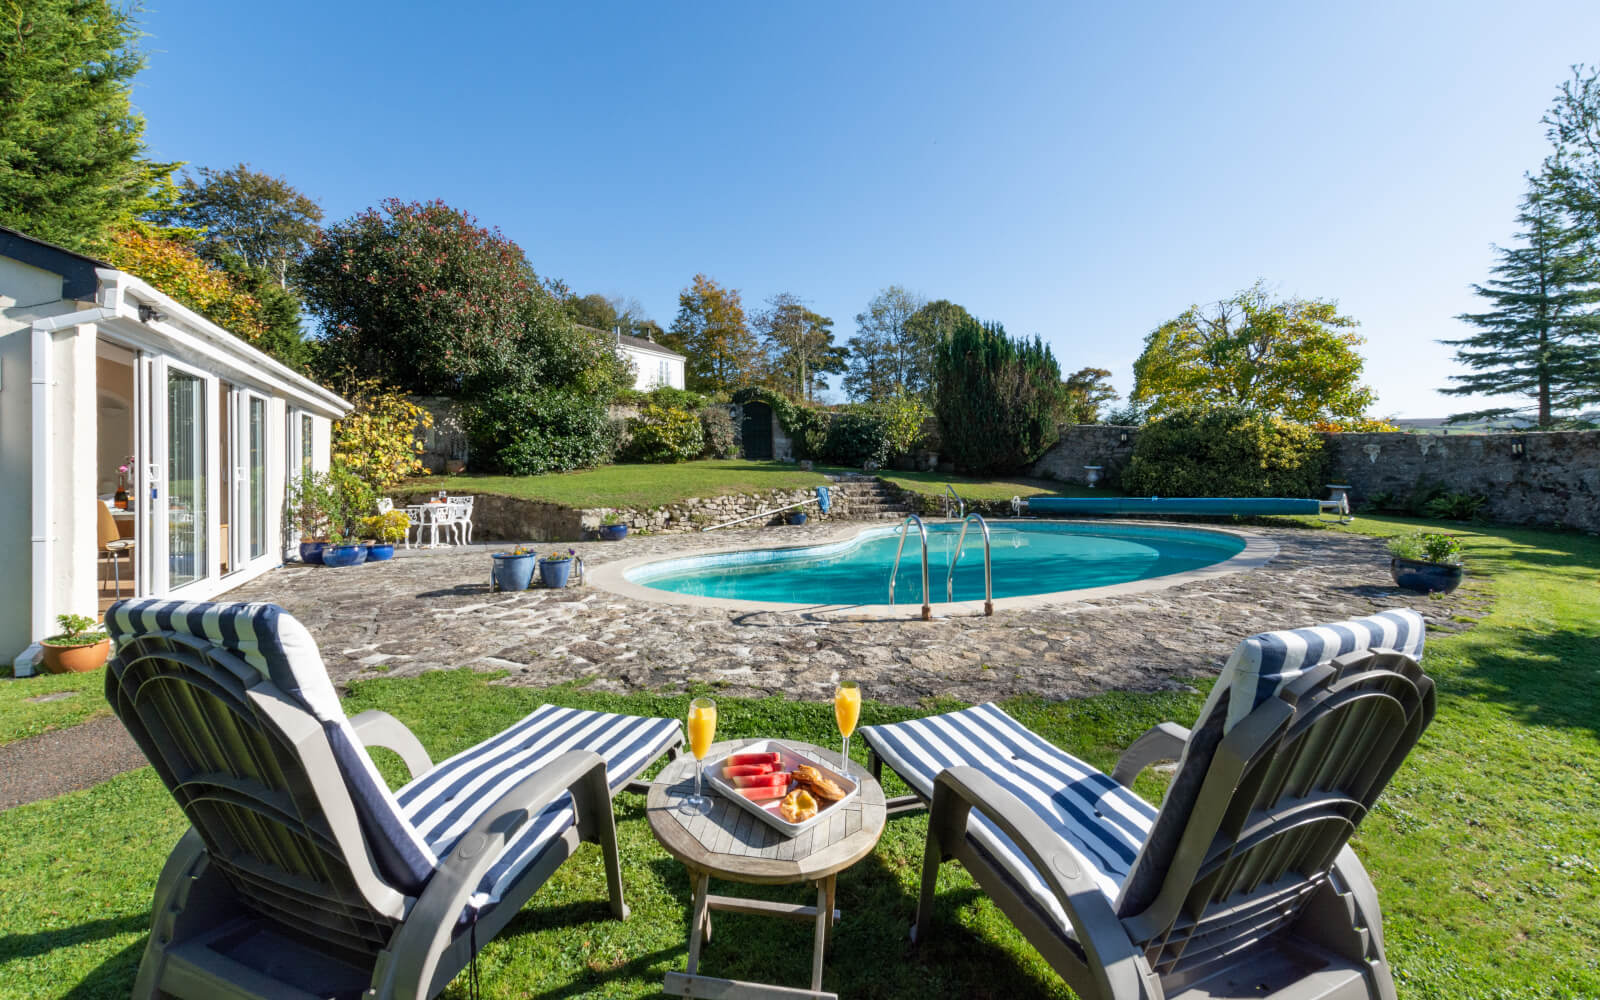 Holiday Cottages With Swimming Pools In East Winch To Rent - Save up to 60%